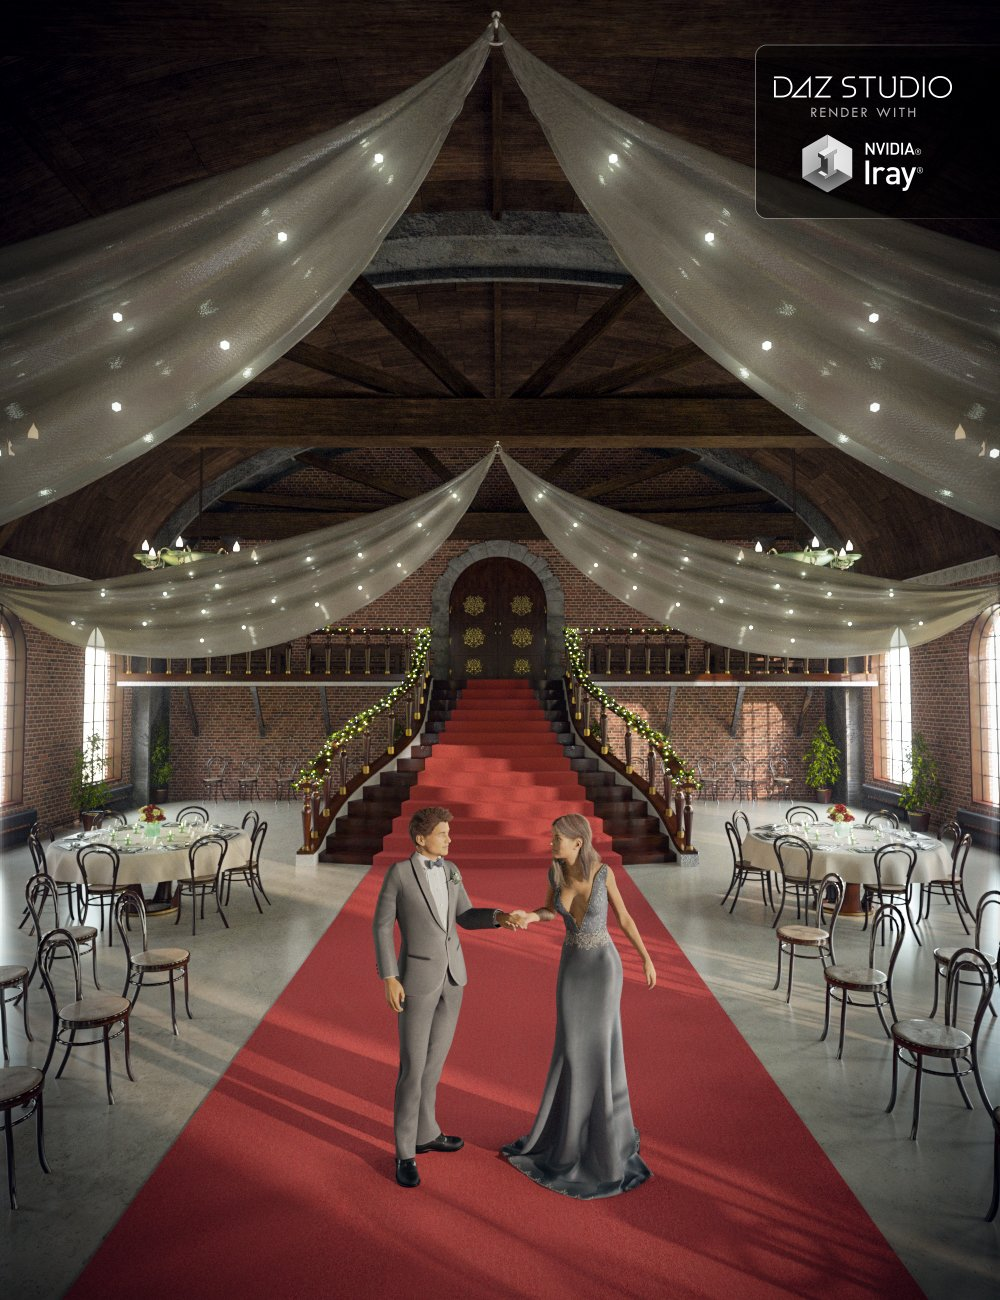 Enchanted Ballroom by: Mely3D, 3D Models by Daz 3D